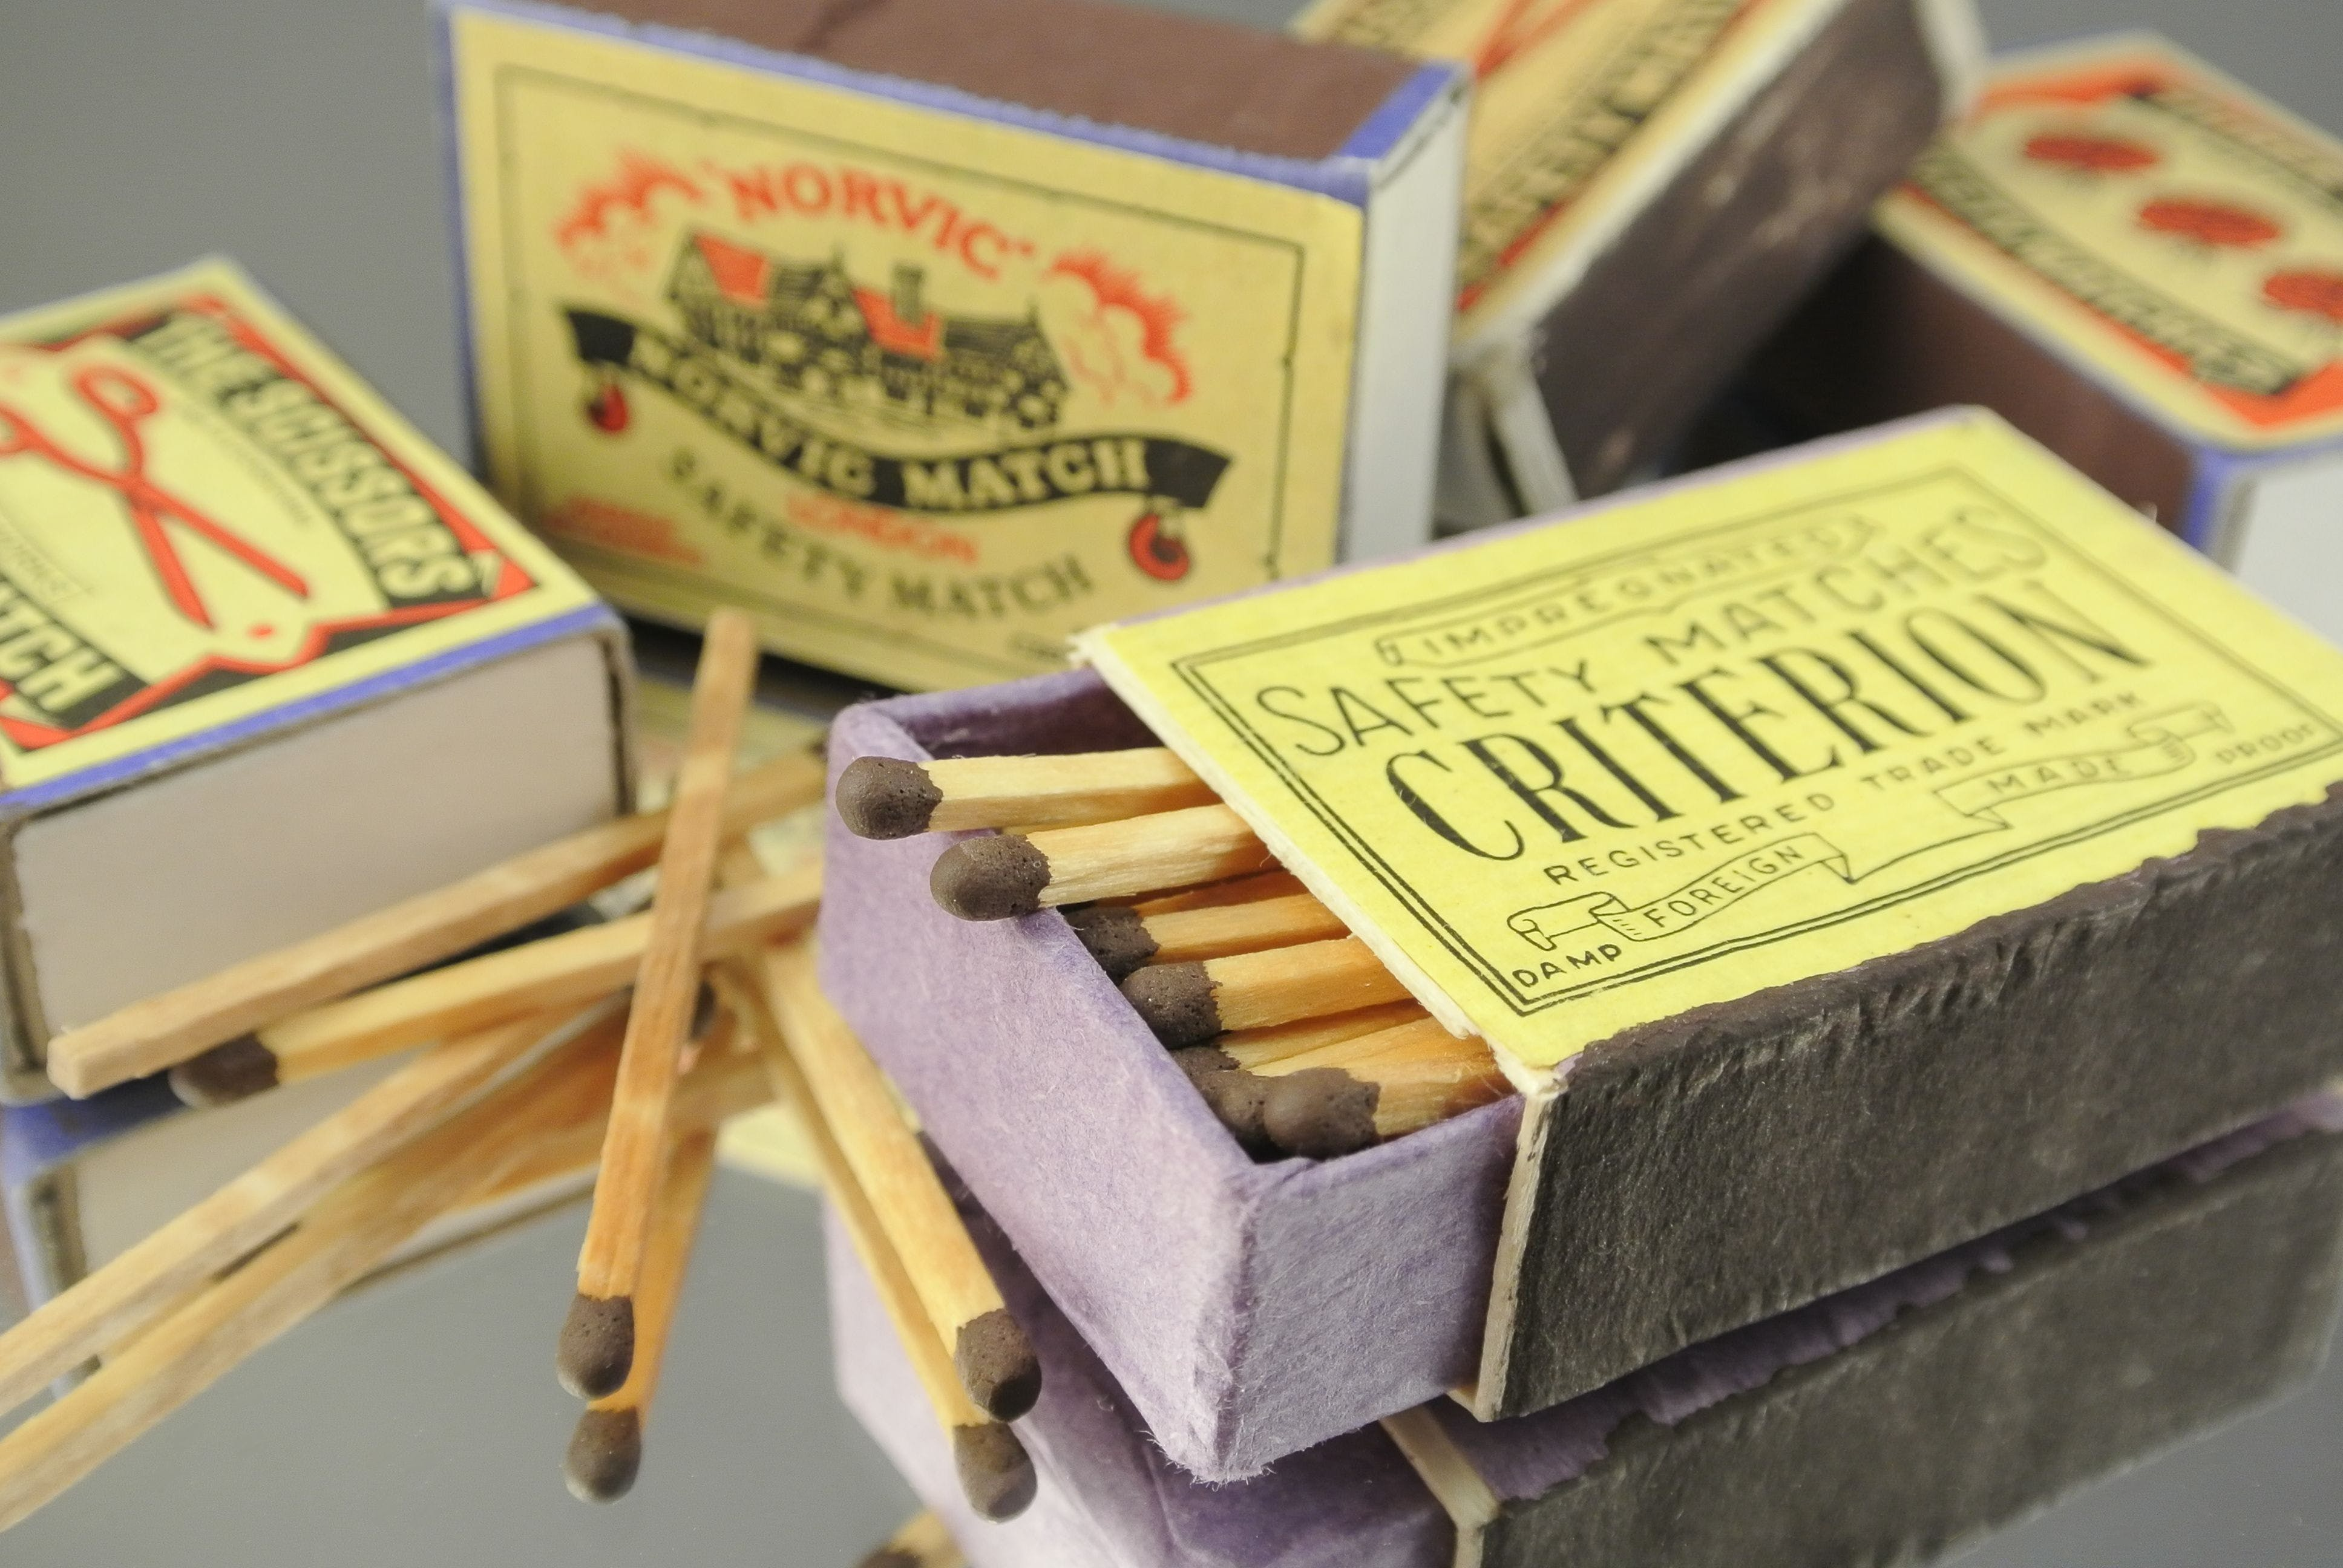 Five Safety Match Boxes on Gray Surface